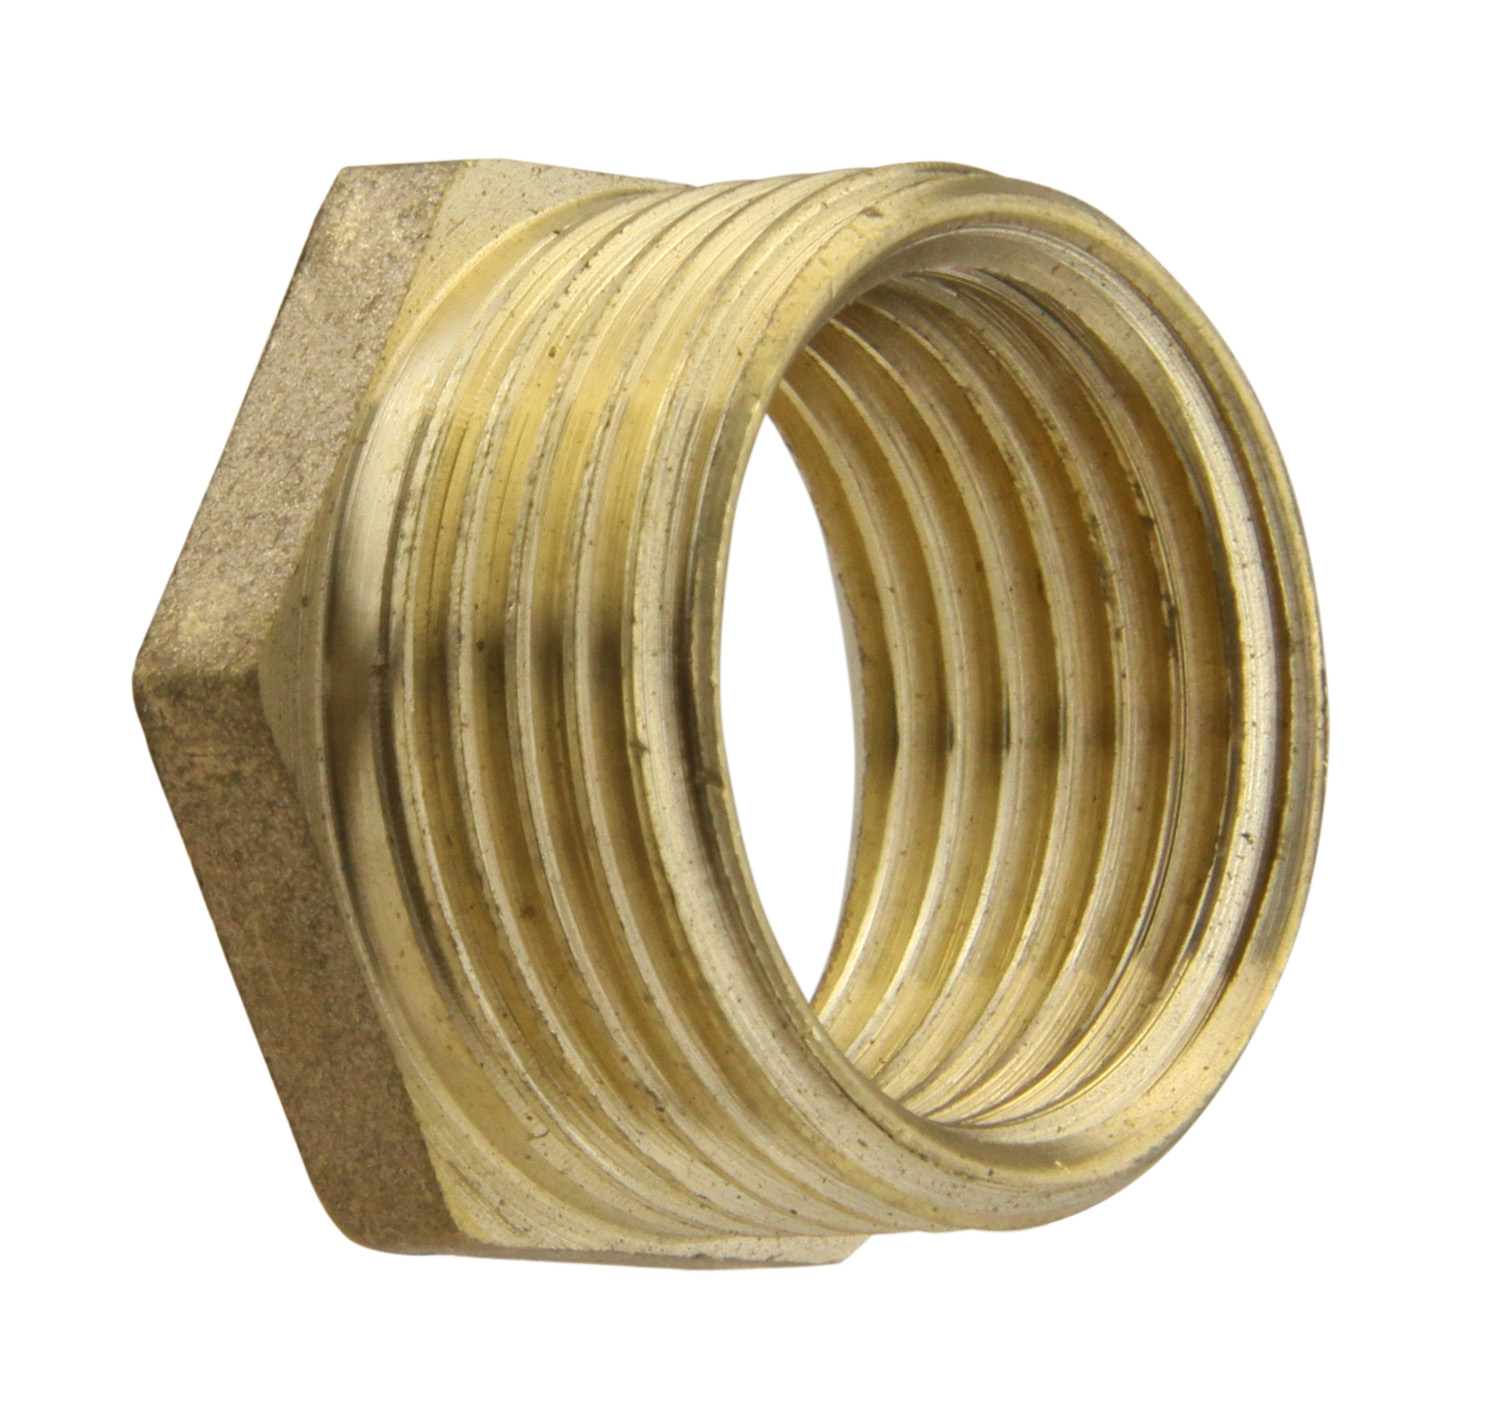 Hex Bushes - Threaded